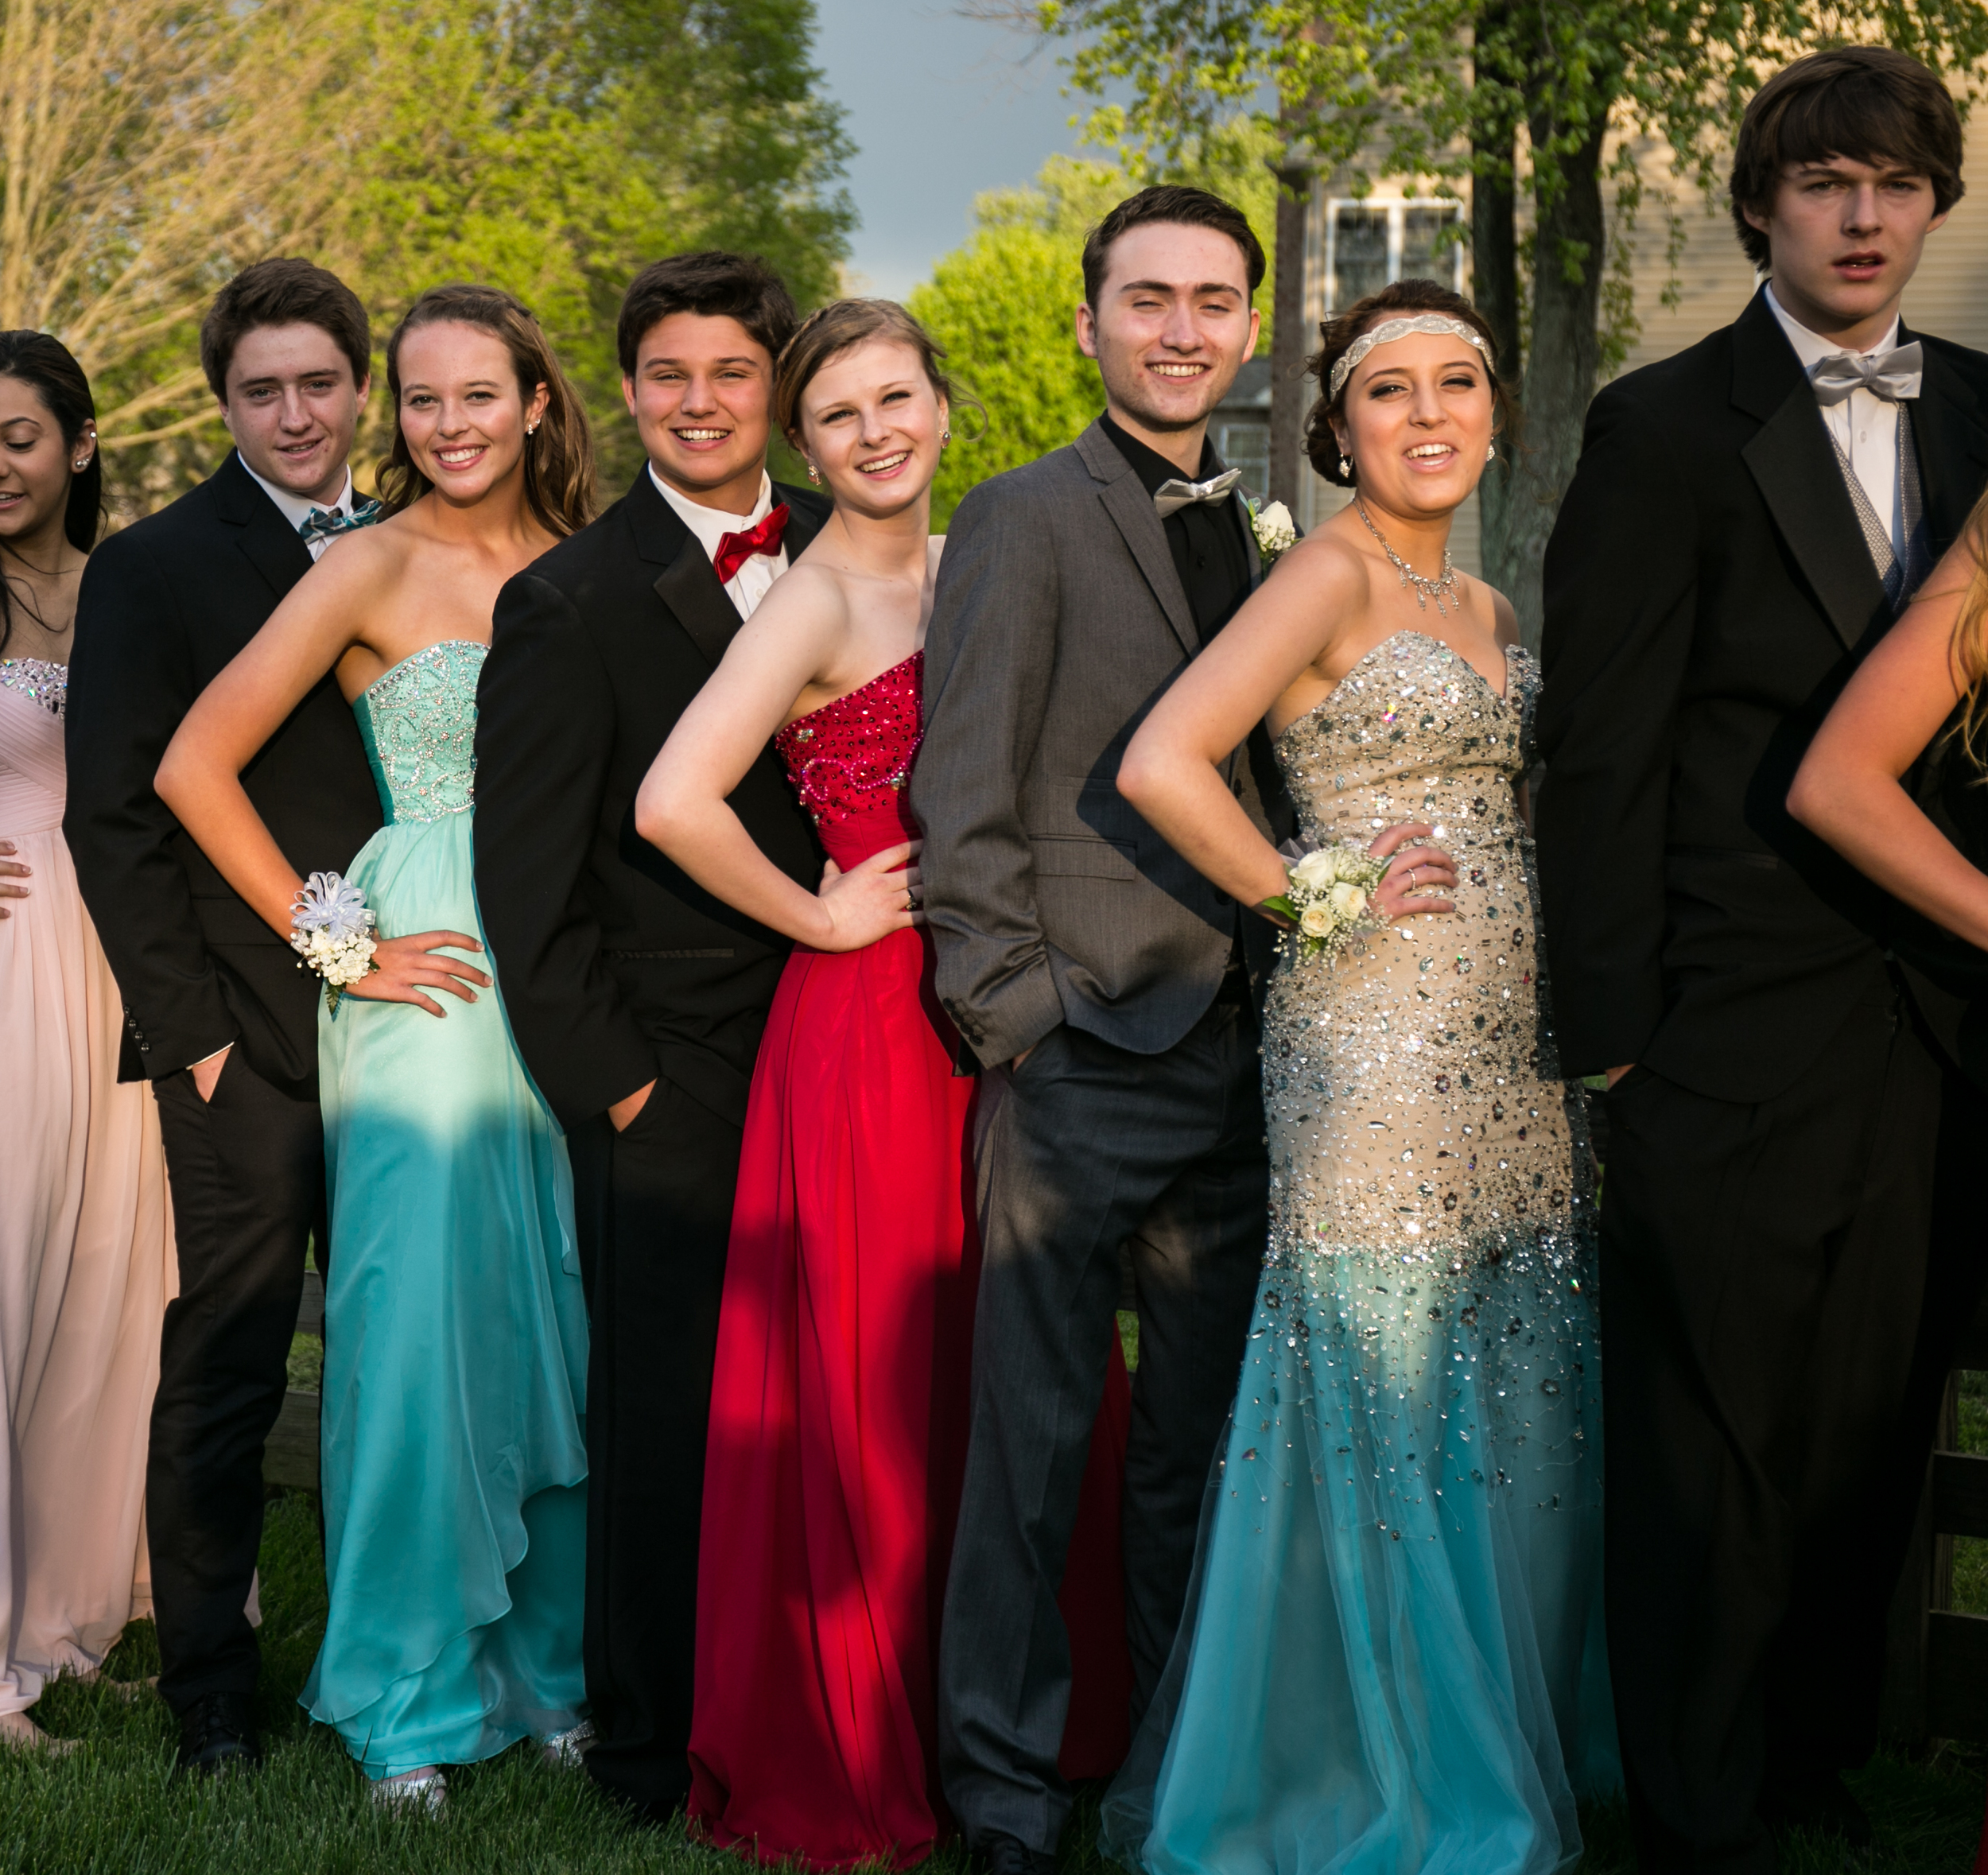 Mount-De-Sales-Pre-Prom-May-2014-48.jpg